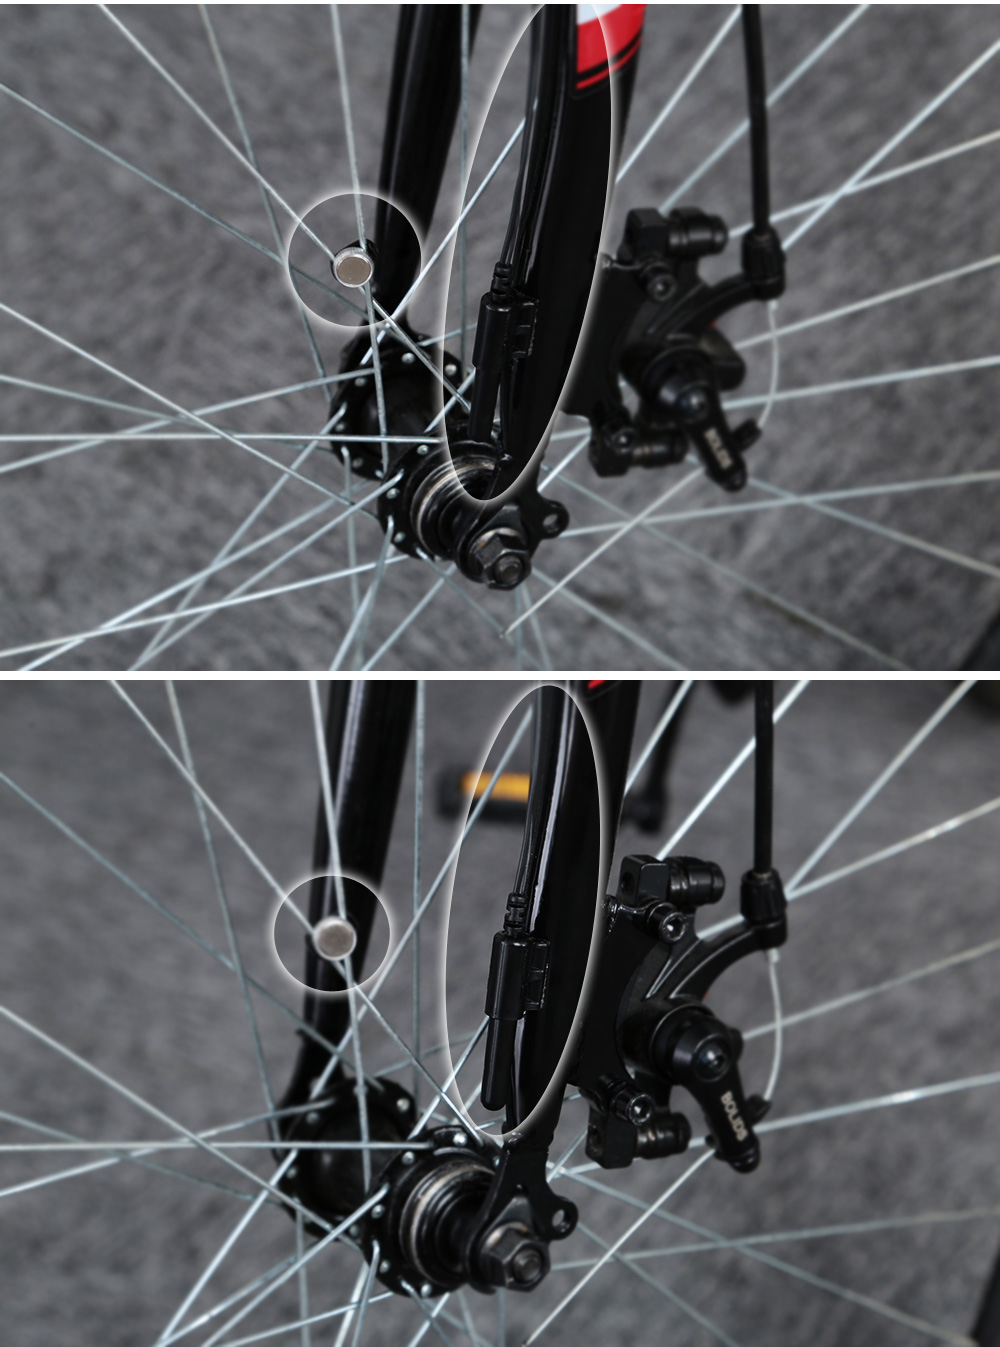 CATEYE CC - VL520 Wired Bike Computer 7 Functions Cycling Velometer